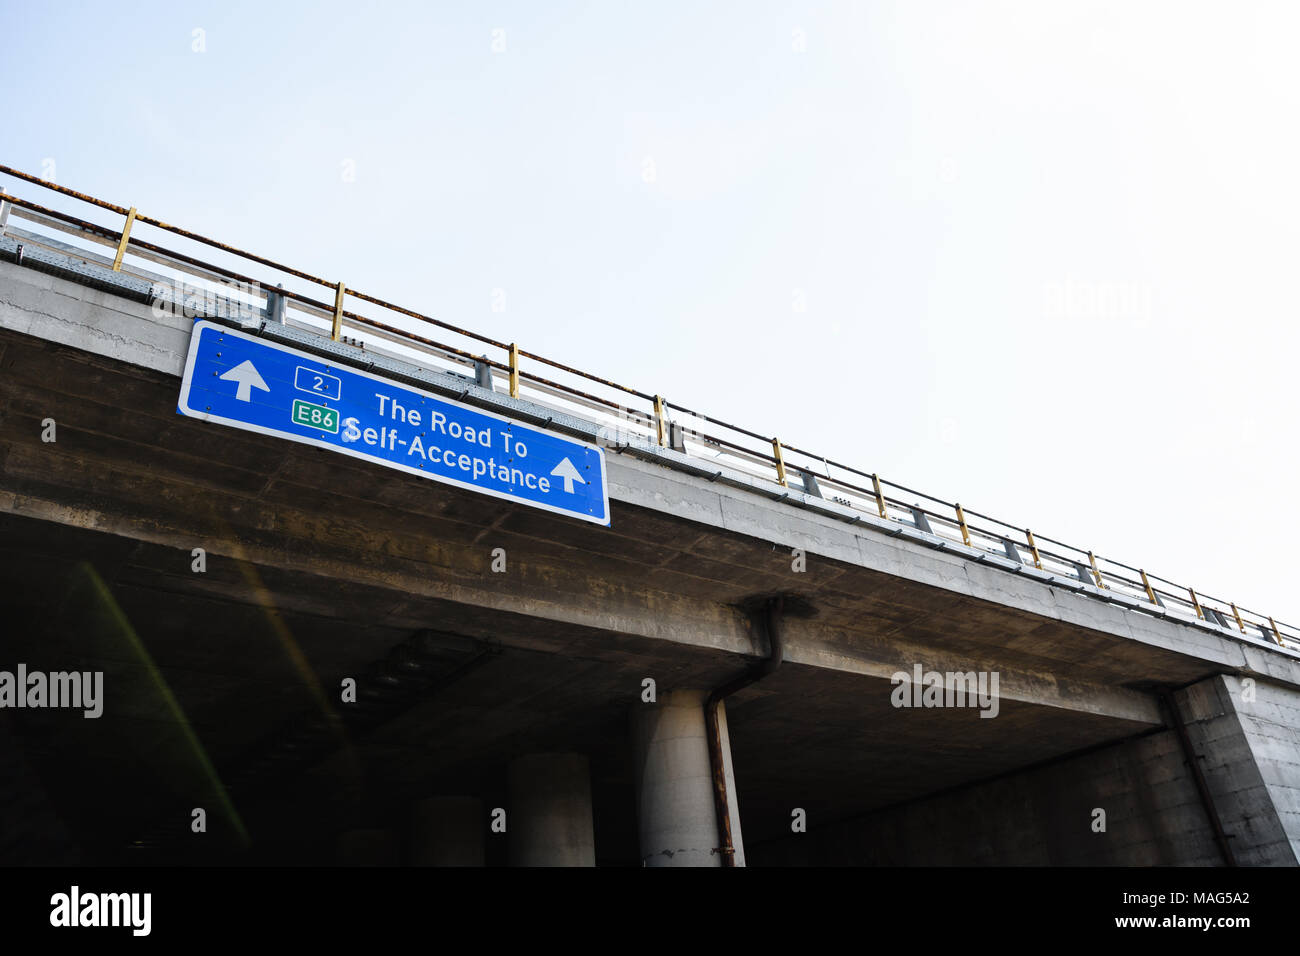 The Road To Self-Acceptance Blue Road Sign Against Clear Sky - Stock Image